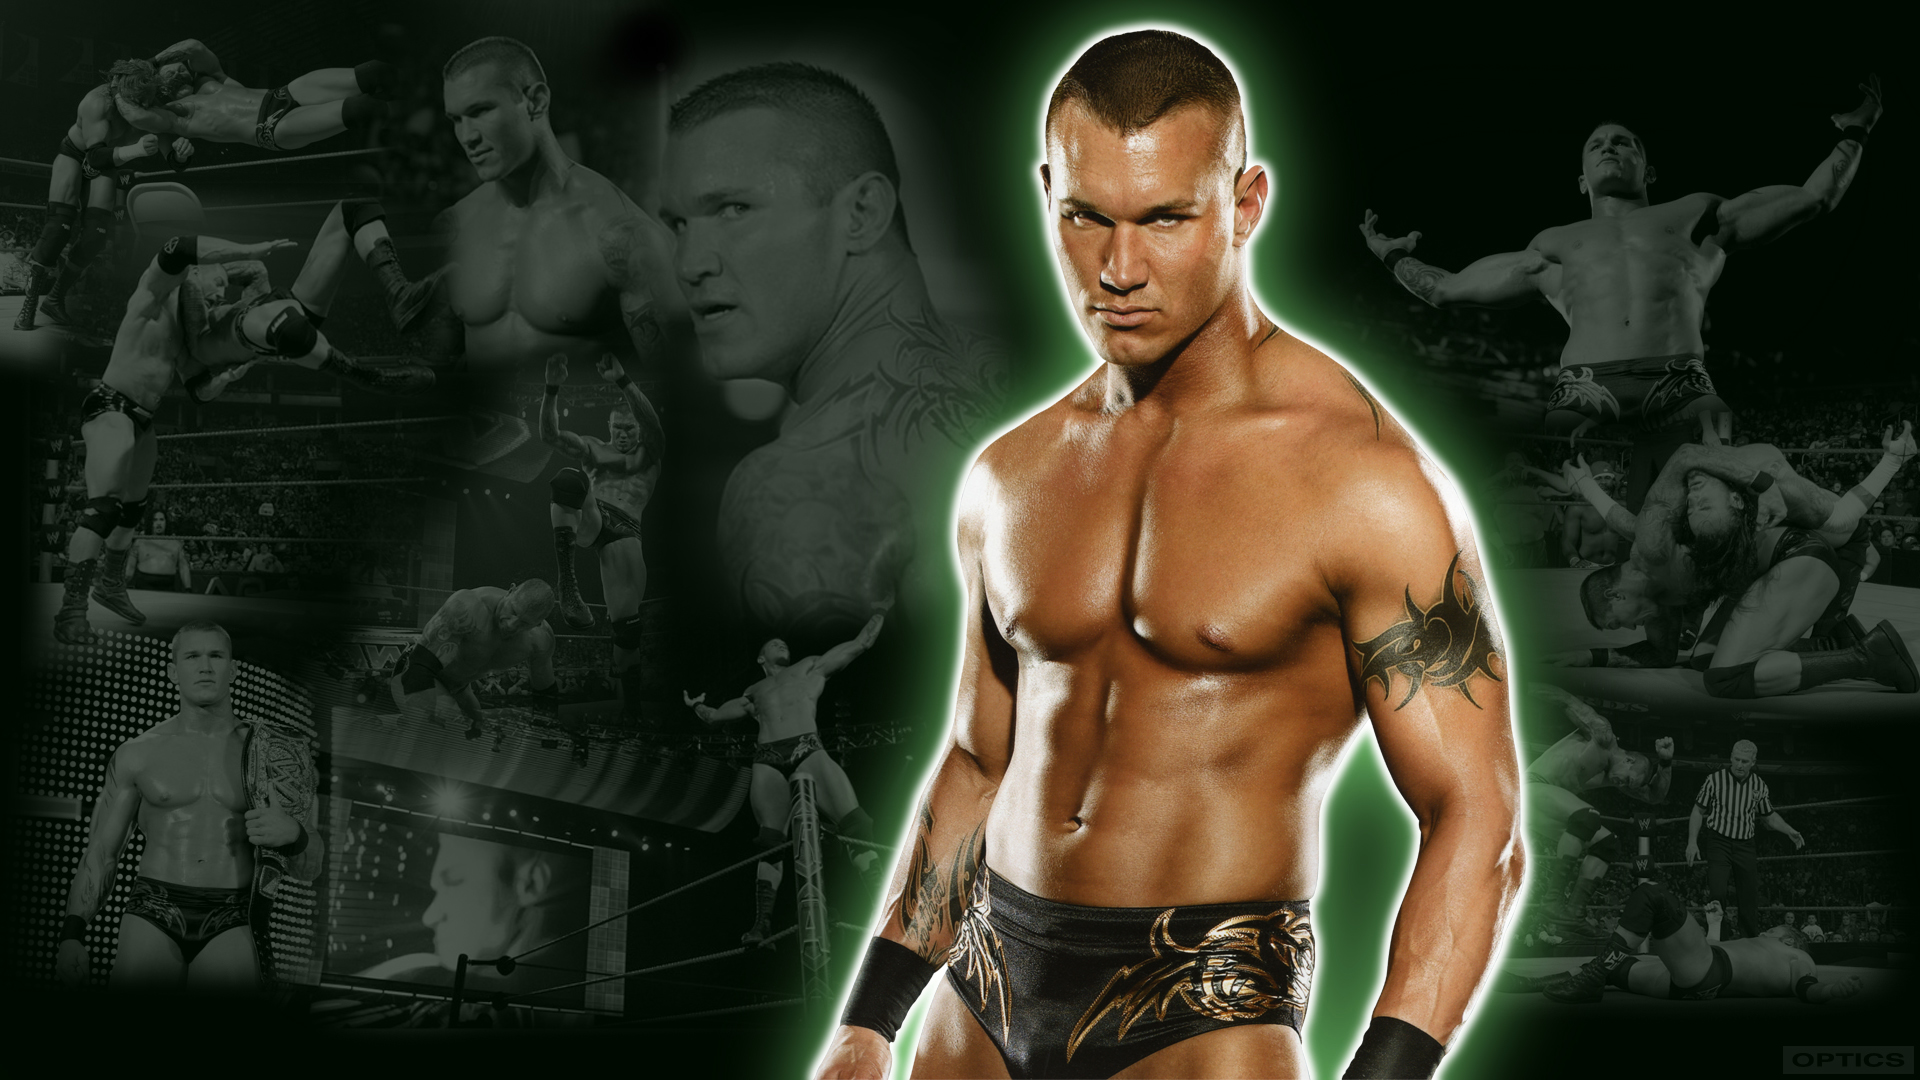 Randy Orton - WWE Wallpaper by ~0PT1C5 on deviantART